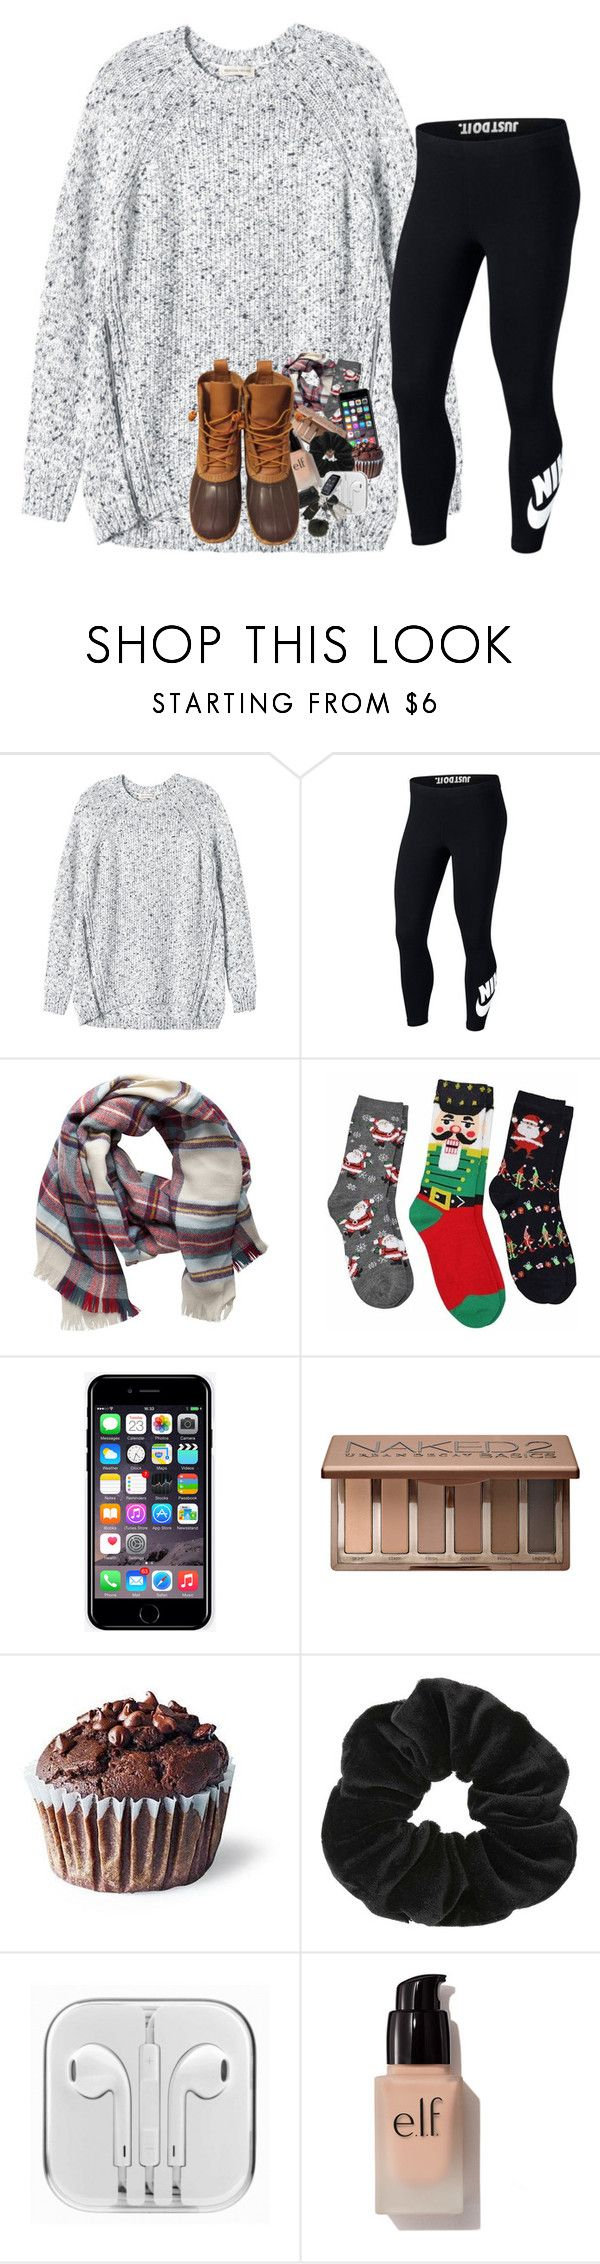 """sick day "" by prepstergab ❤ liked on Polyvore featuring Rebecca Taylor, NIKE, Pieces, Off-White, Urban Decay, Miss Selfridge, e.l.f. and L.L.Bean"